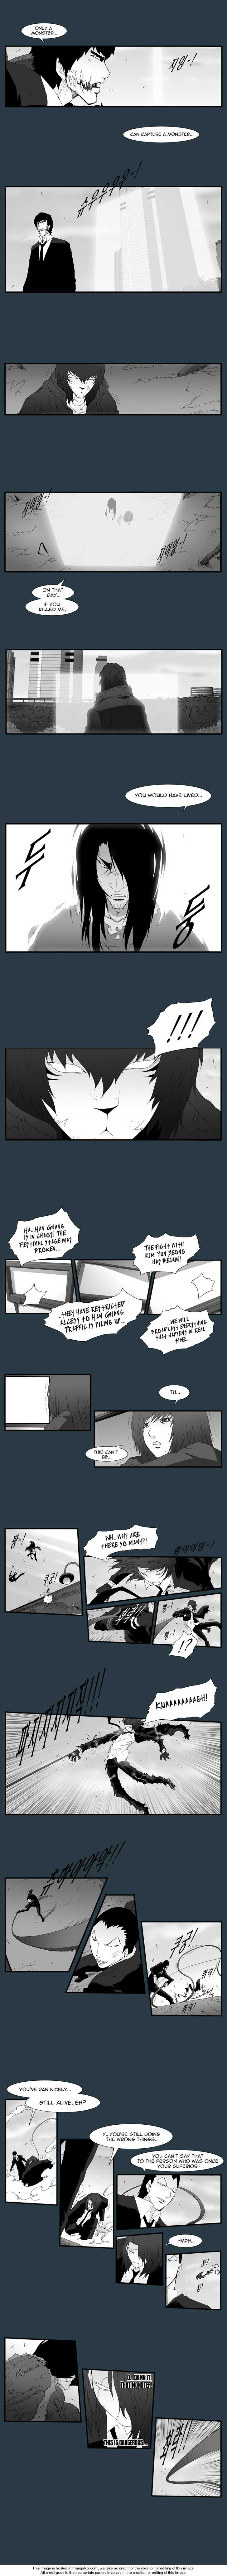 Trace 5 Page 2